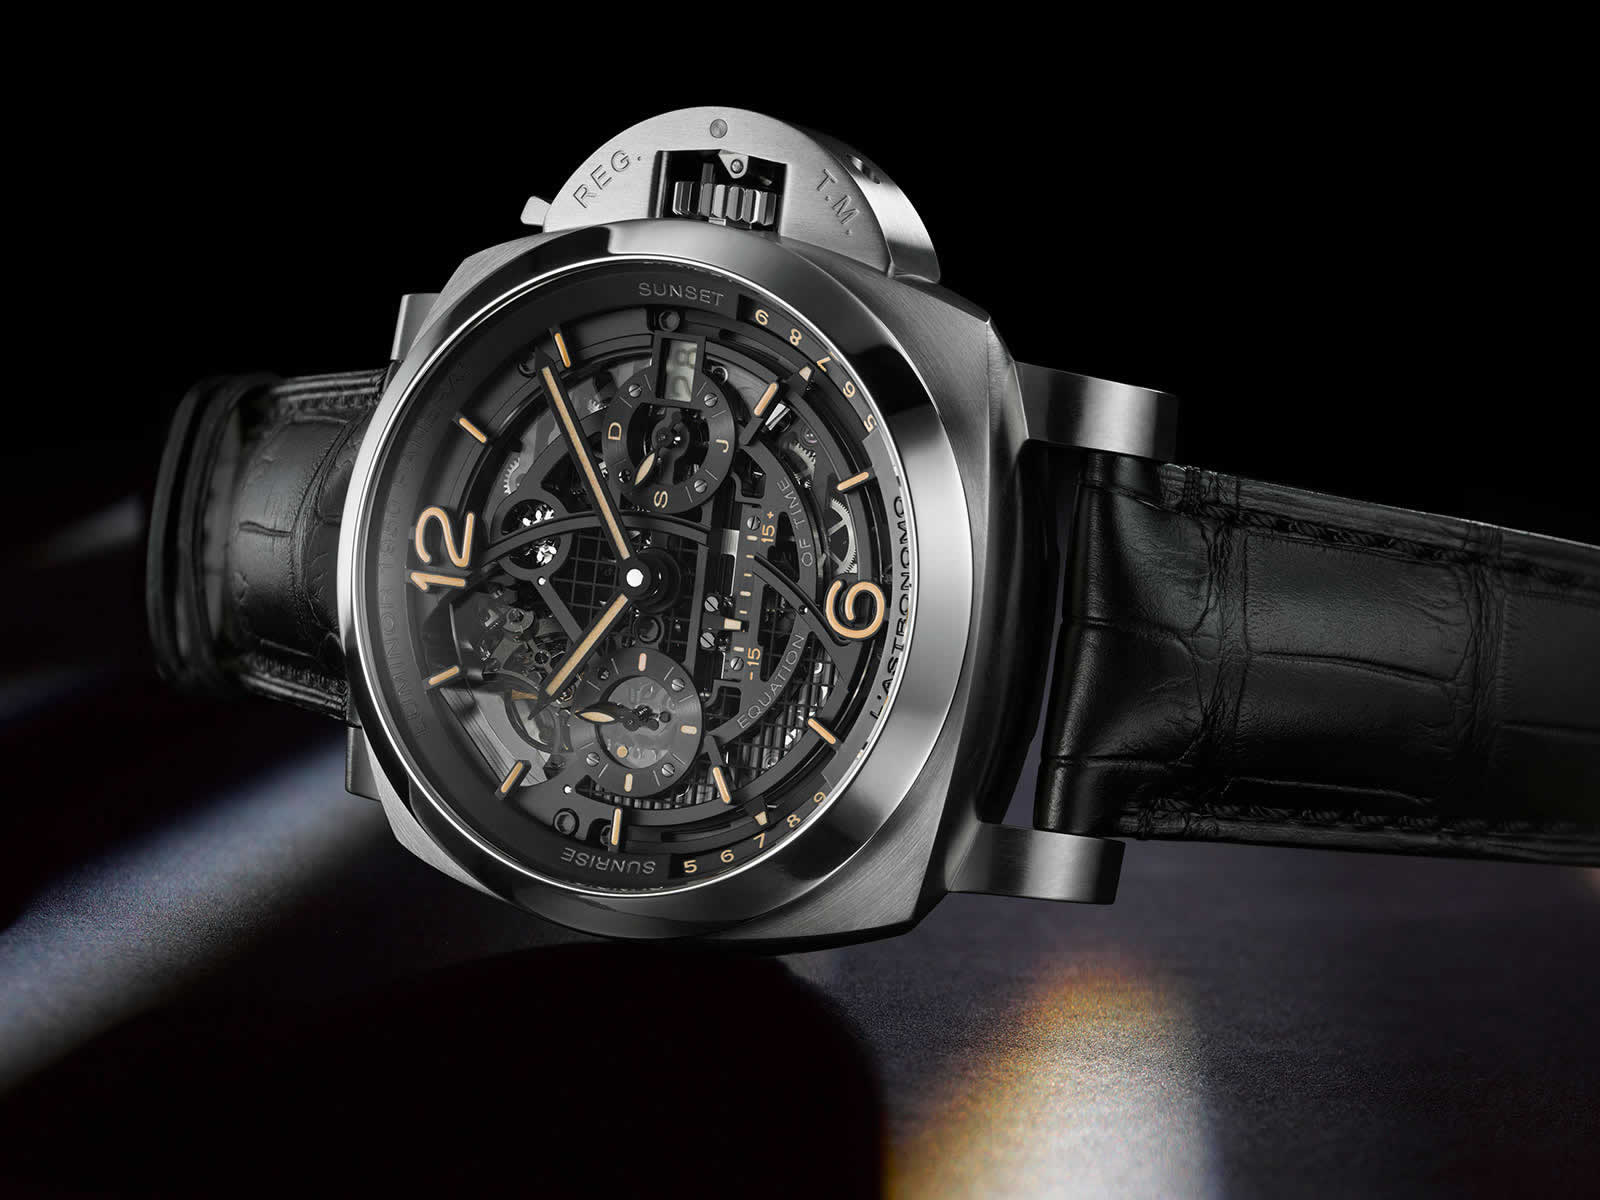 Panerai-L-Astronomo-Luminor-1950-Tourbillon-Moon-Phases-Equation-of-Time-Gmt-Pam00920-3.jpg